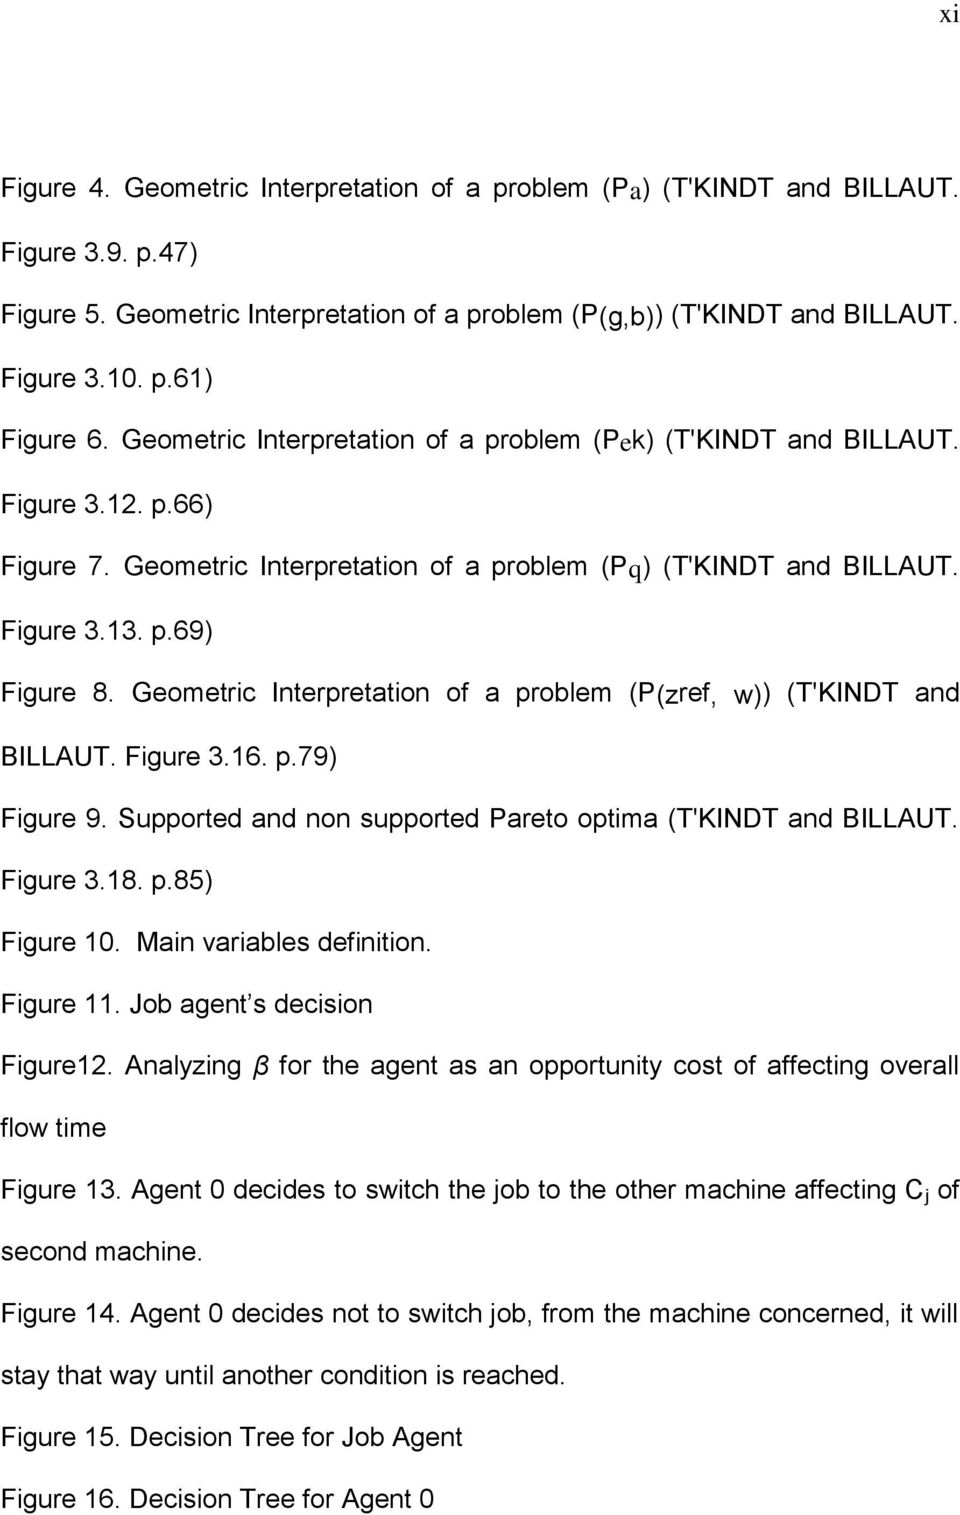 Geometrc Interpretaton of a problem (P(zref, w)) (T'KINDT and BILLAUT. Fgure 3.16. p.79) Fgure 9. Supported and non supported Pareto optma (T'KINDT and BILLAUT. Fgure 3.18. p.85) Fgure 10.